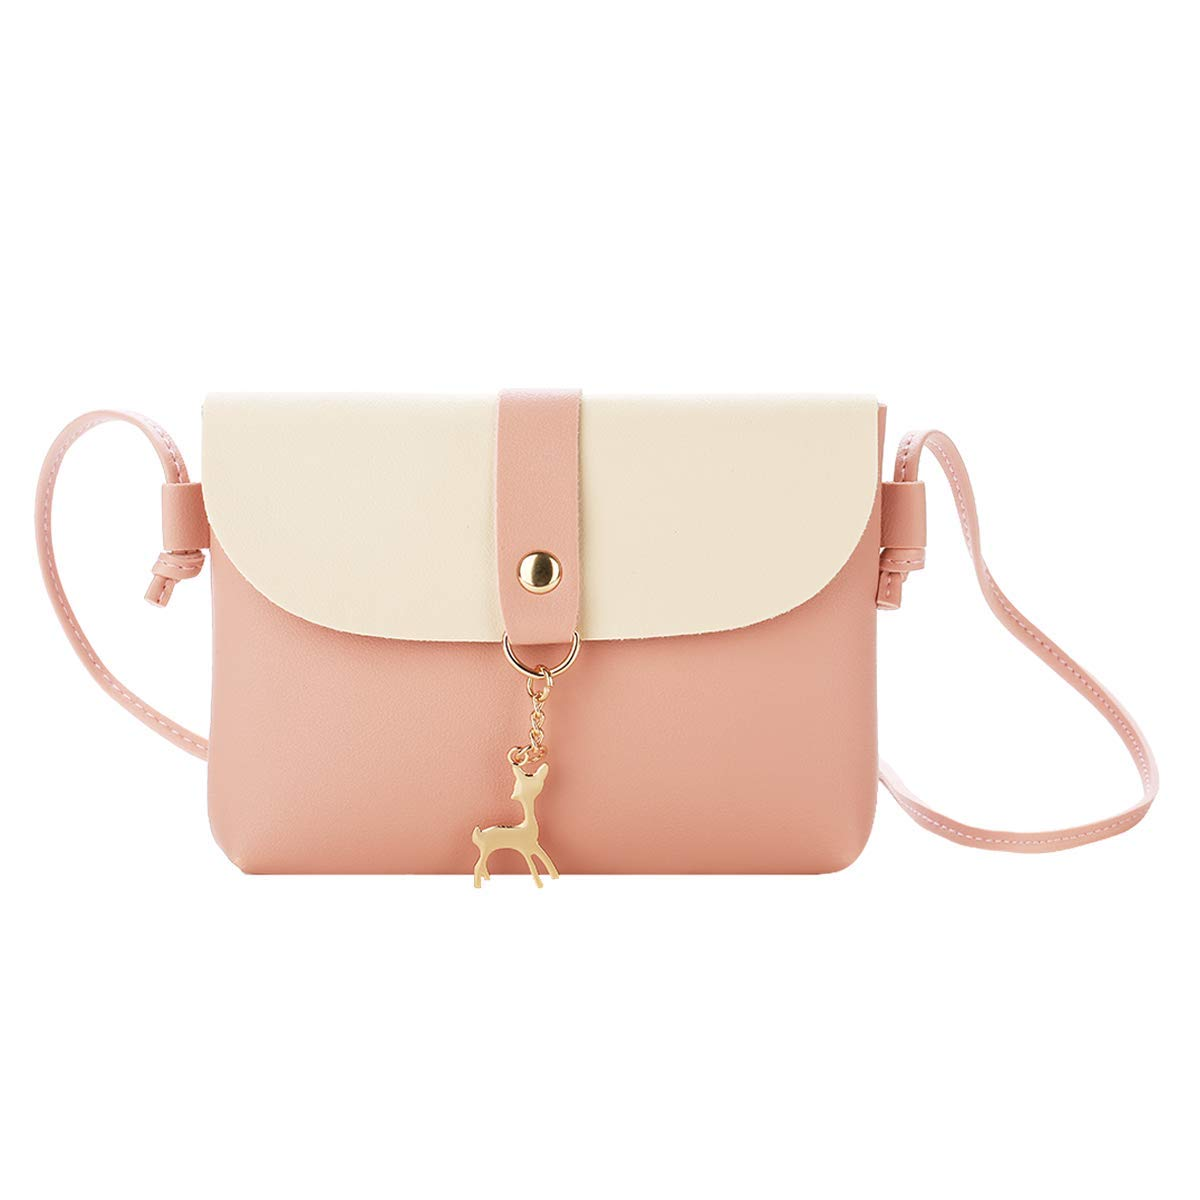 Small Crossbody Purse for Women With Pendant,PU Leather Crossbody Bag With Strap Cell Phone Bag for Girl,Pink